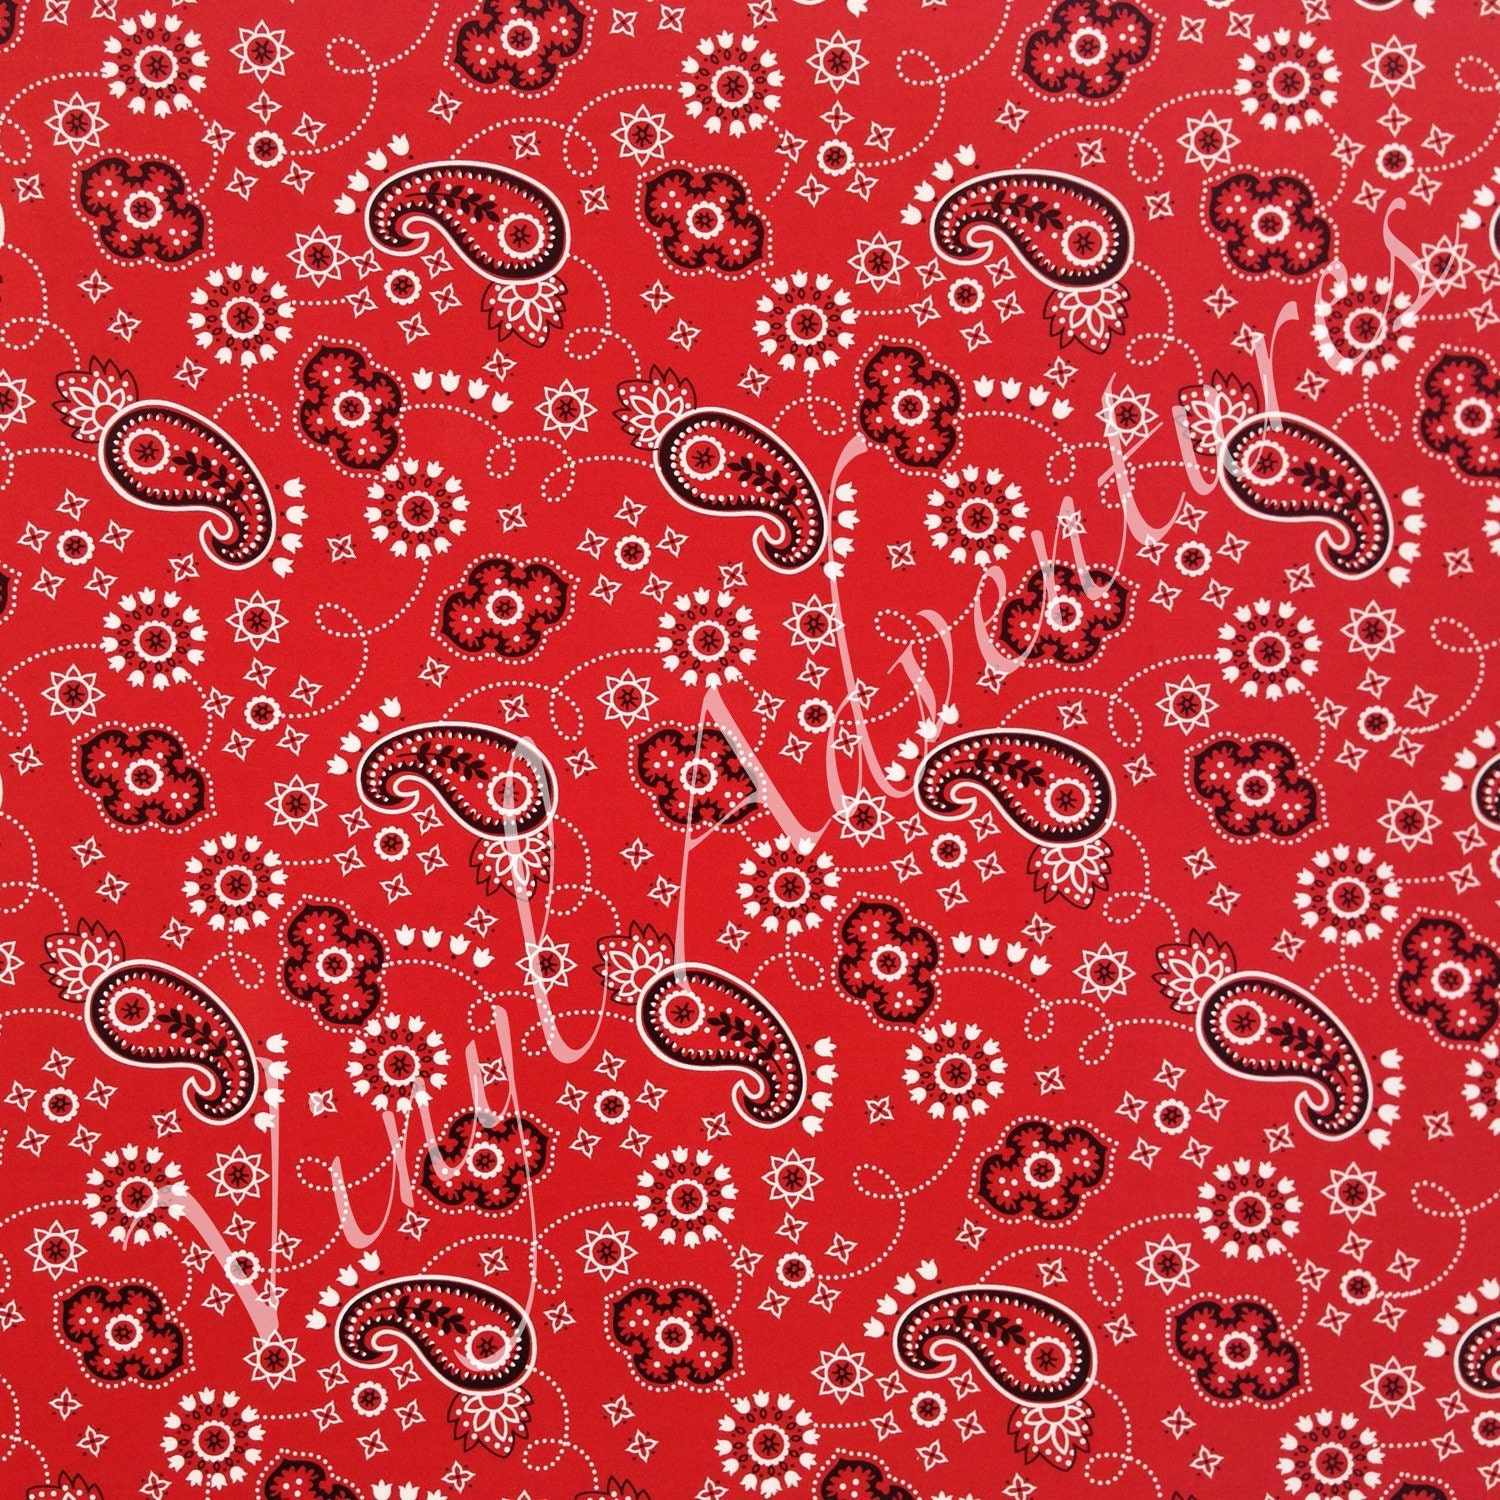 Bandana Heat Transfer Vinyl Red Pattern Htv Paisley